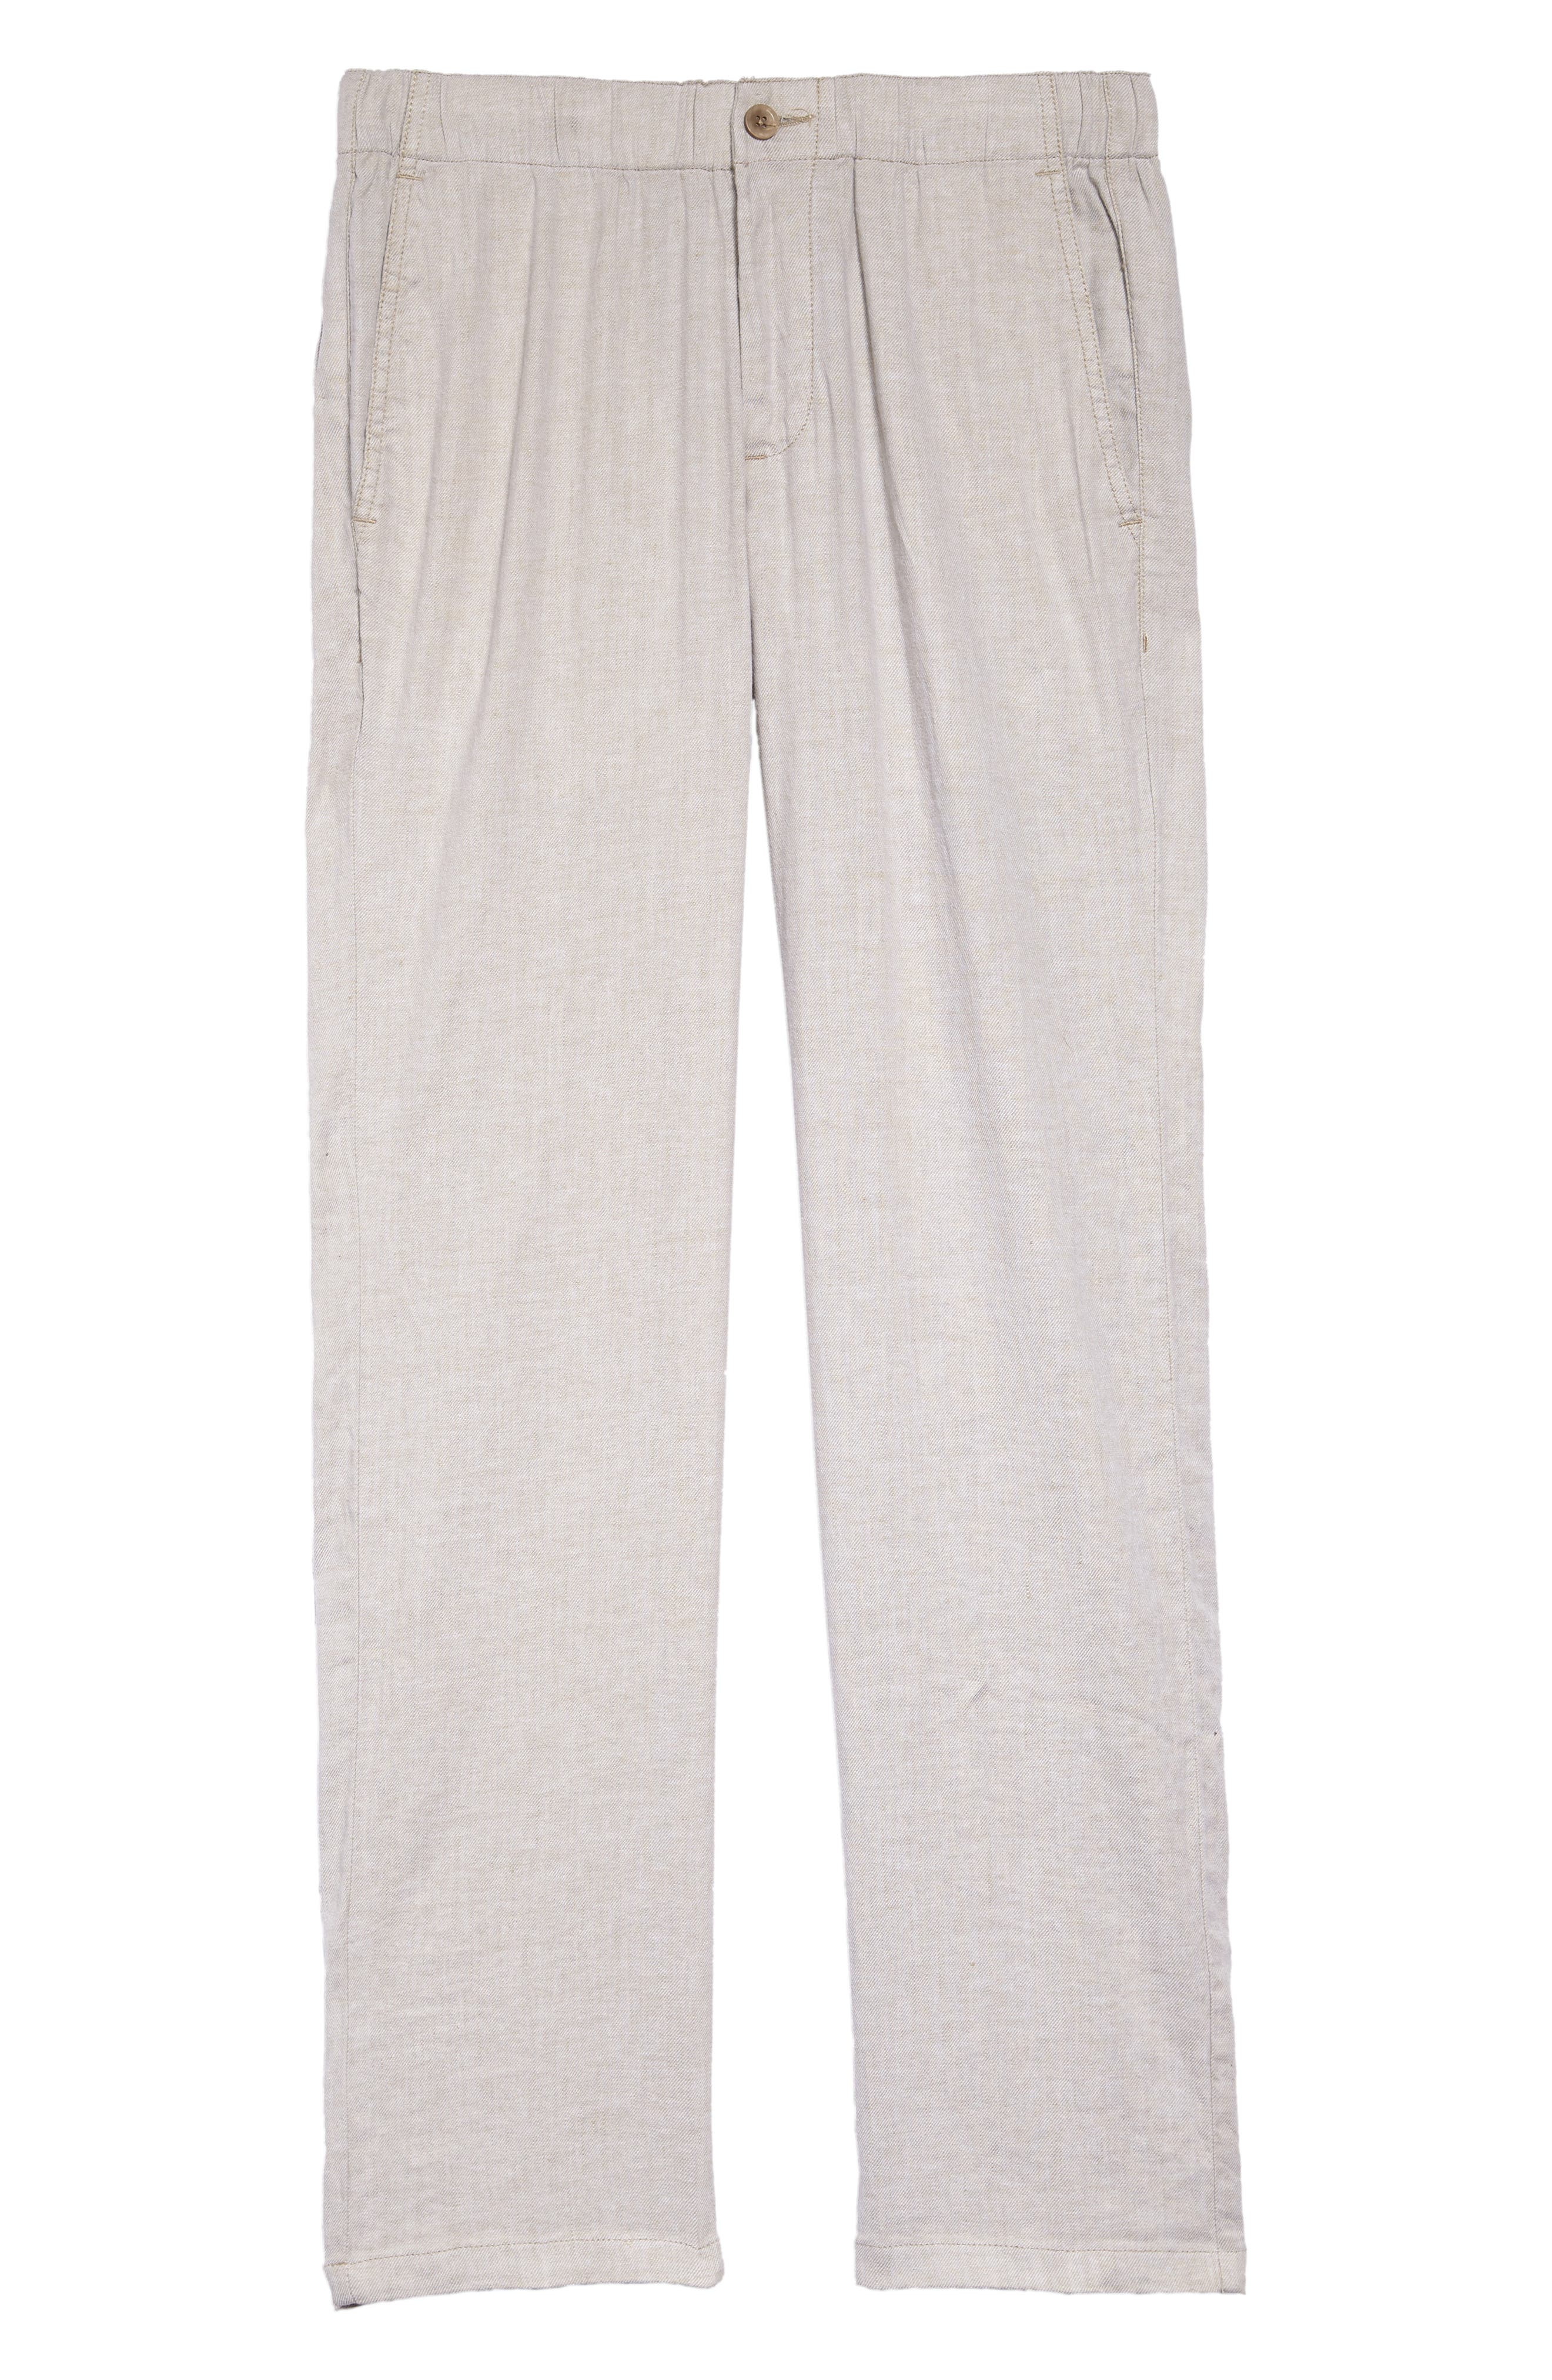 Relaxed Linen Pants,                             Alternate thumbnail 2, color,                             STONE KHAKI